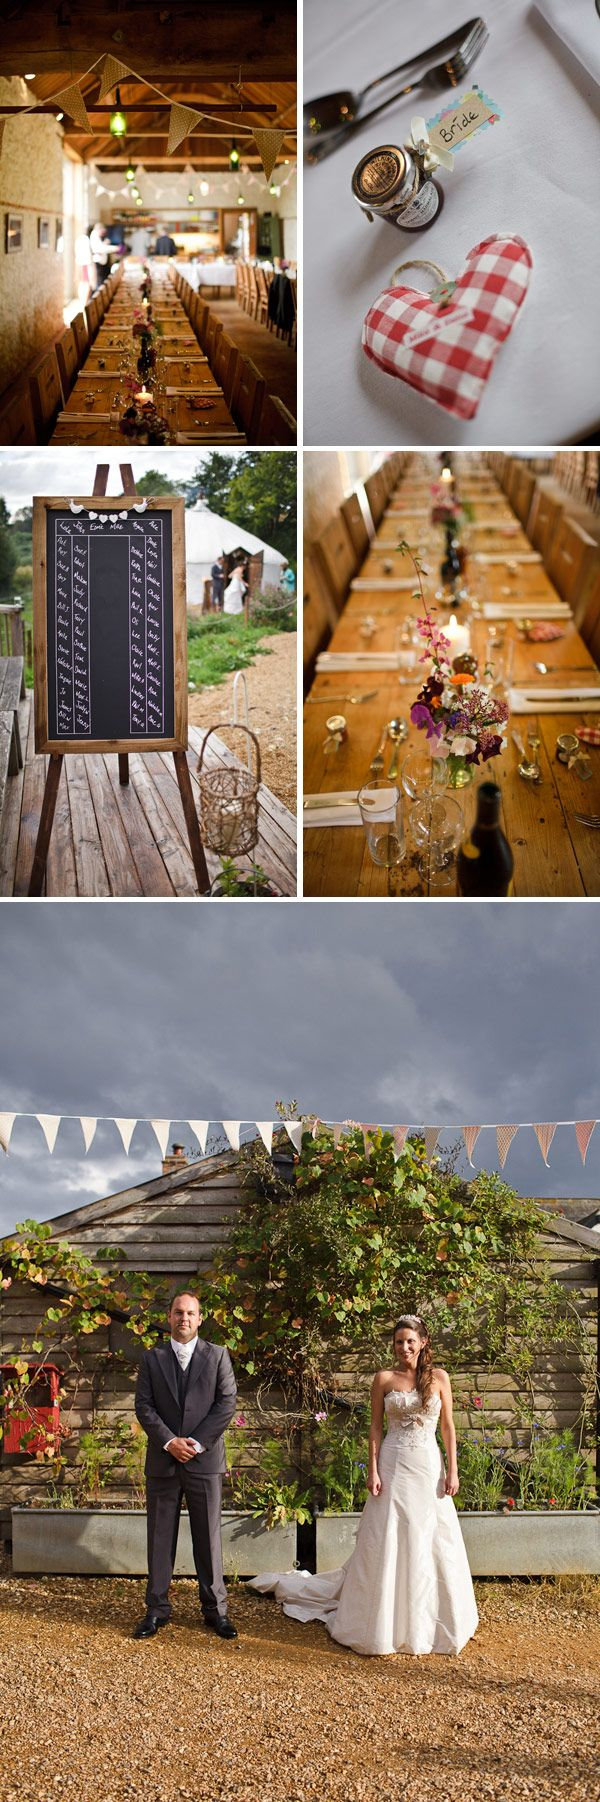 A Marriage At River Cottage.